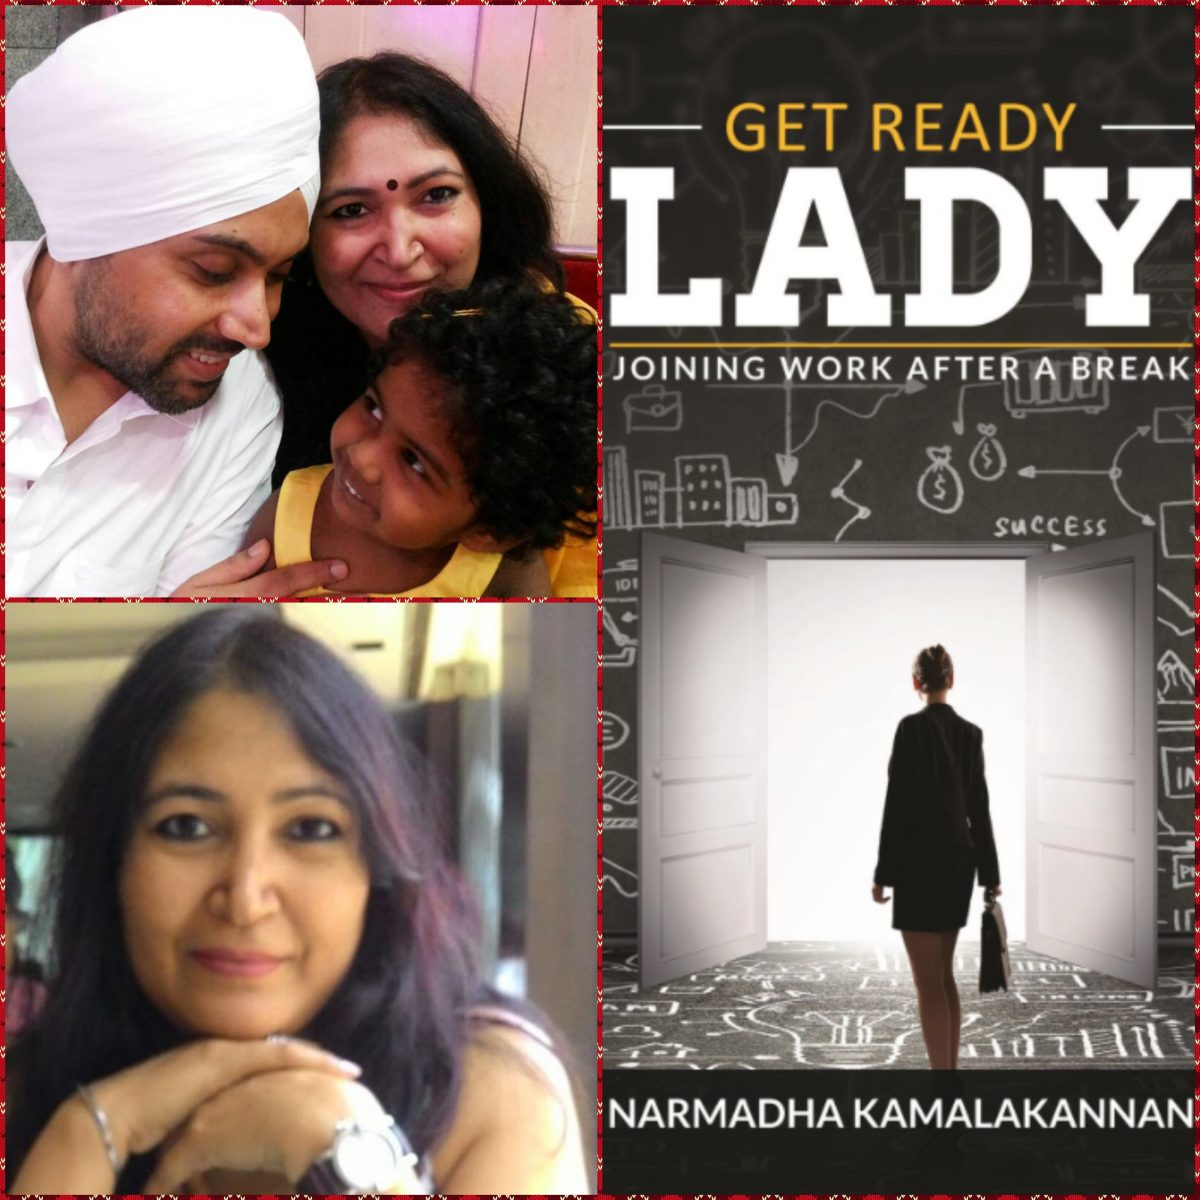 GET READY LADY Interview Series : Gurpreet talks about his Caring Wife Rajeshwari Sharma, freelance Journalist